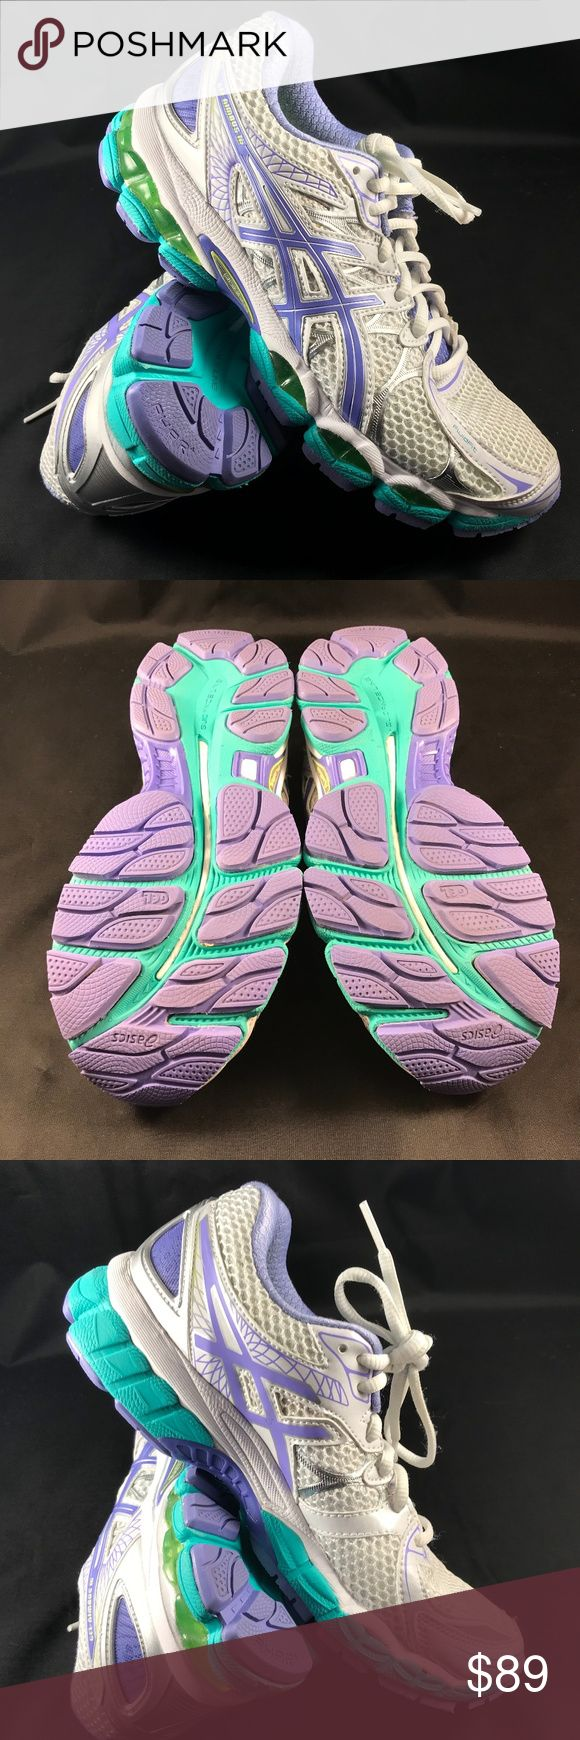 MINT ASICS GEL NIMBUS 16 womens sz 8 MED These pass for NEW without Box but they were tried on indoors on a treadmill once for 20-30 minutes. Size 8 Retail $150 ASICS Shoes Athletic Shoes